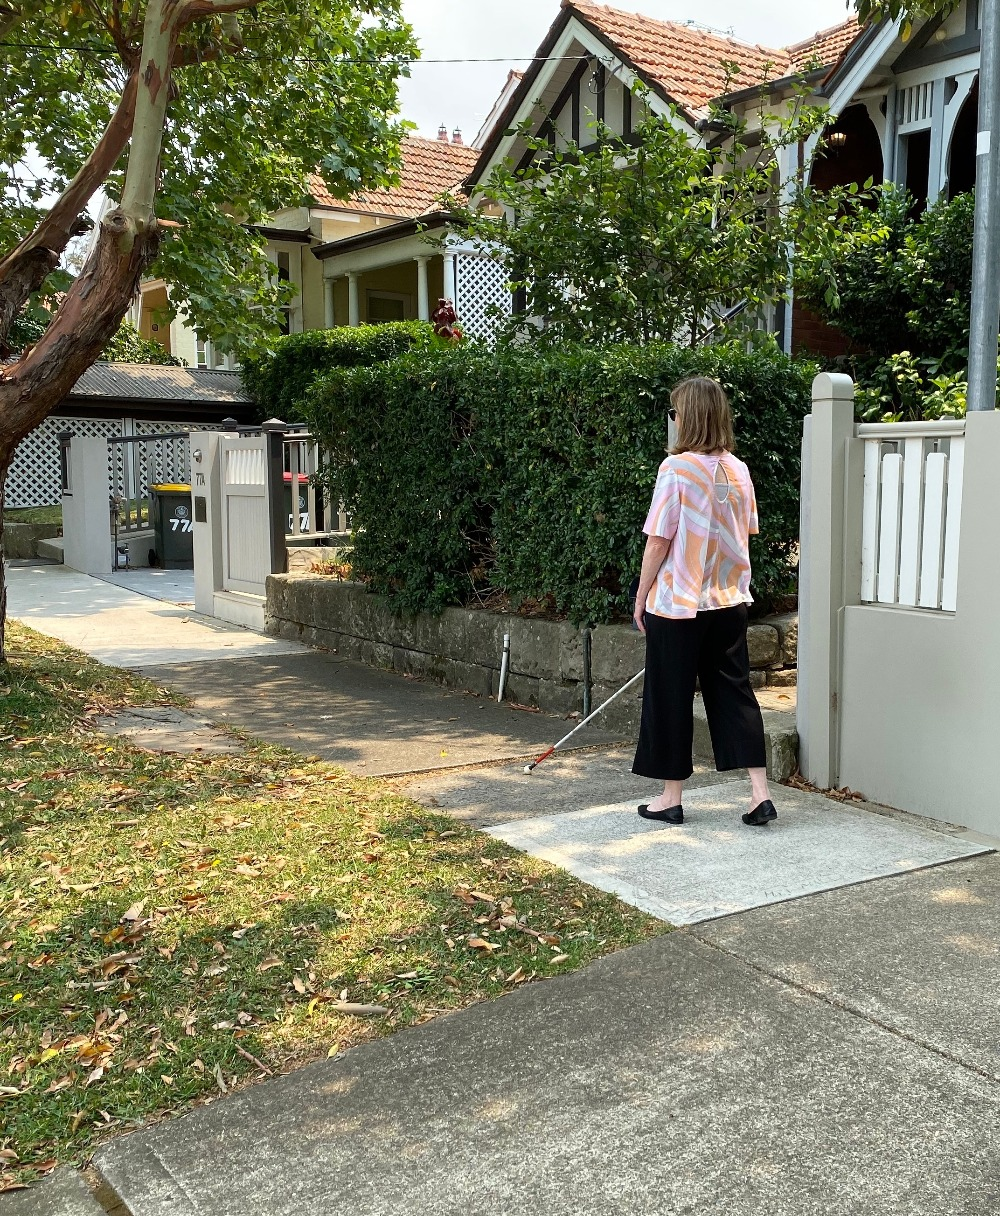 Image description: Woman walking along suburban footpath using a white mobility cane